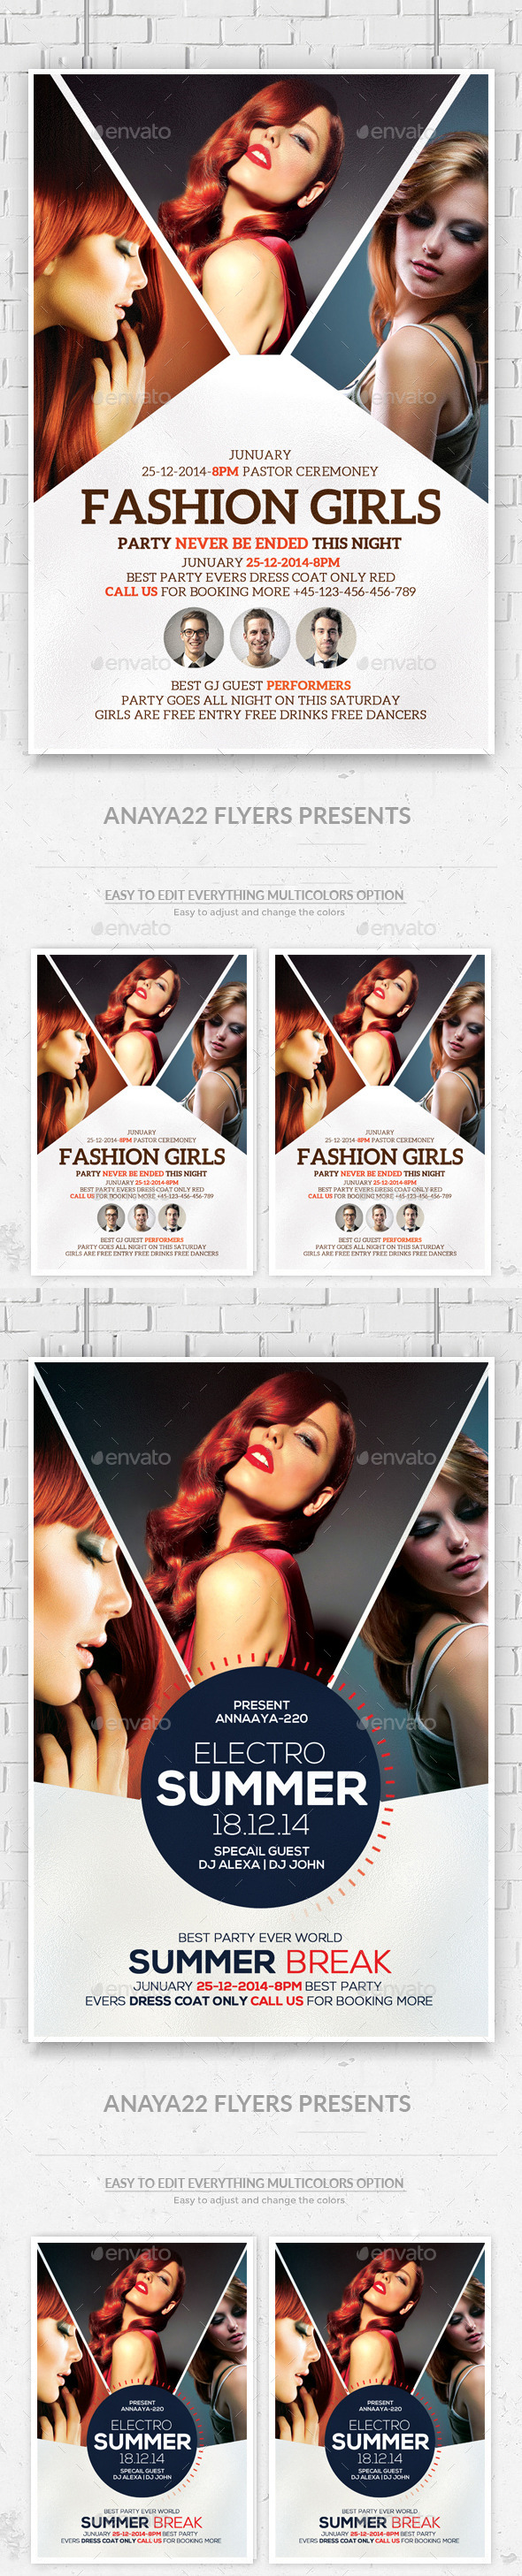 Ladies Night Out Party Flyers Bundle - Clubs & Parties Events